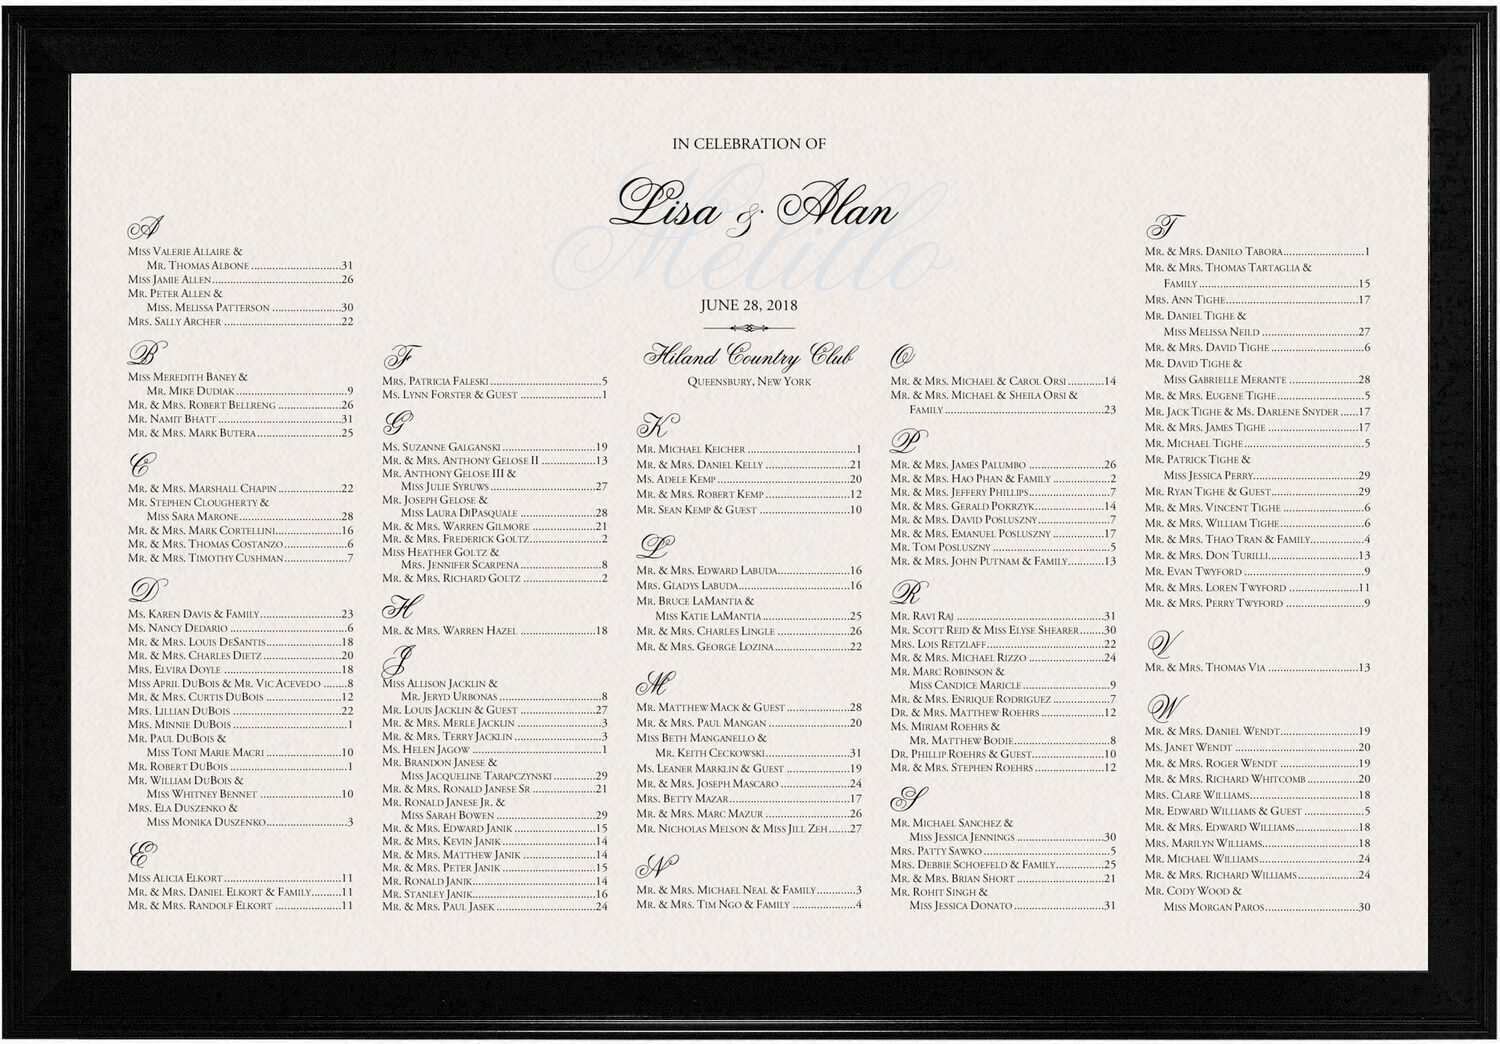 Photograph of Old Script and Garamond Watermark Seating Charts